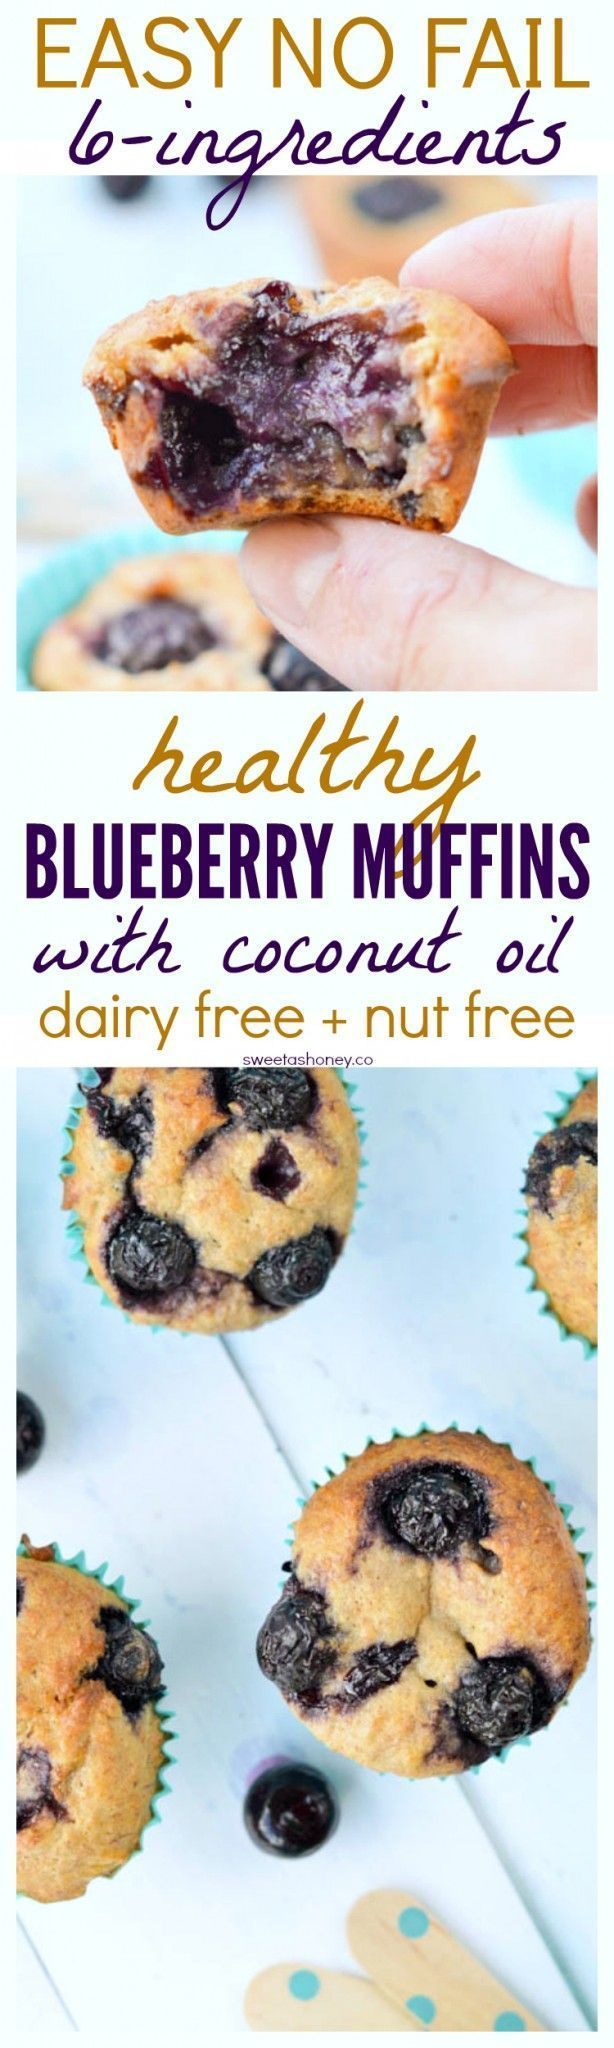 Healthy Whole Wheat Banana Blueberry Muffins   Refined sugar free muffins   Clean eating muffins recipe   Easy 6-ingredients muffins   Healthy muffins   Skinny muffins